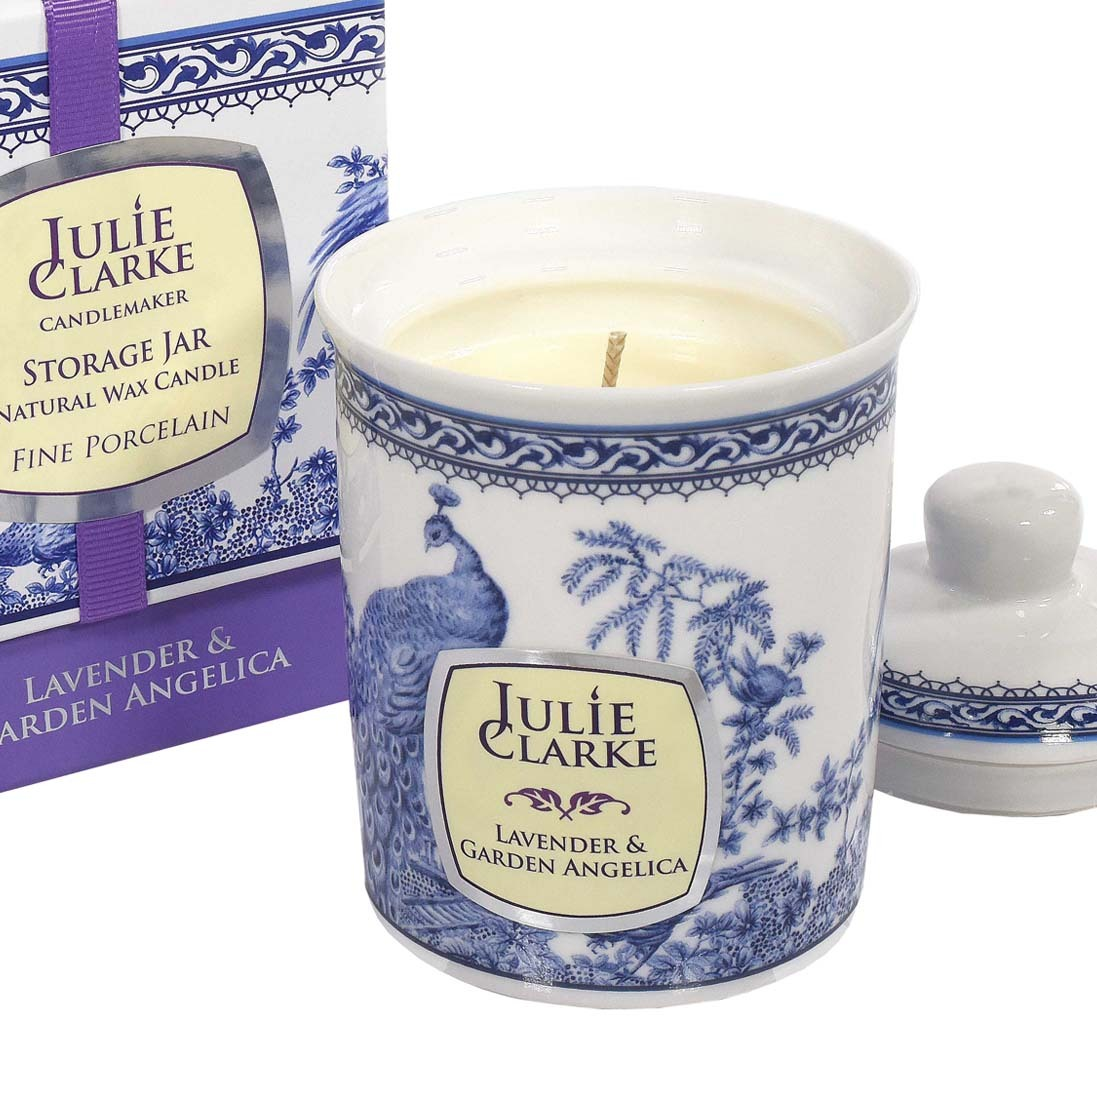 Lavender & Garden Angelica  Storage Jar Candle